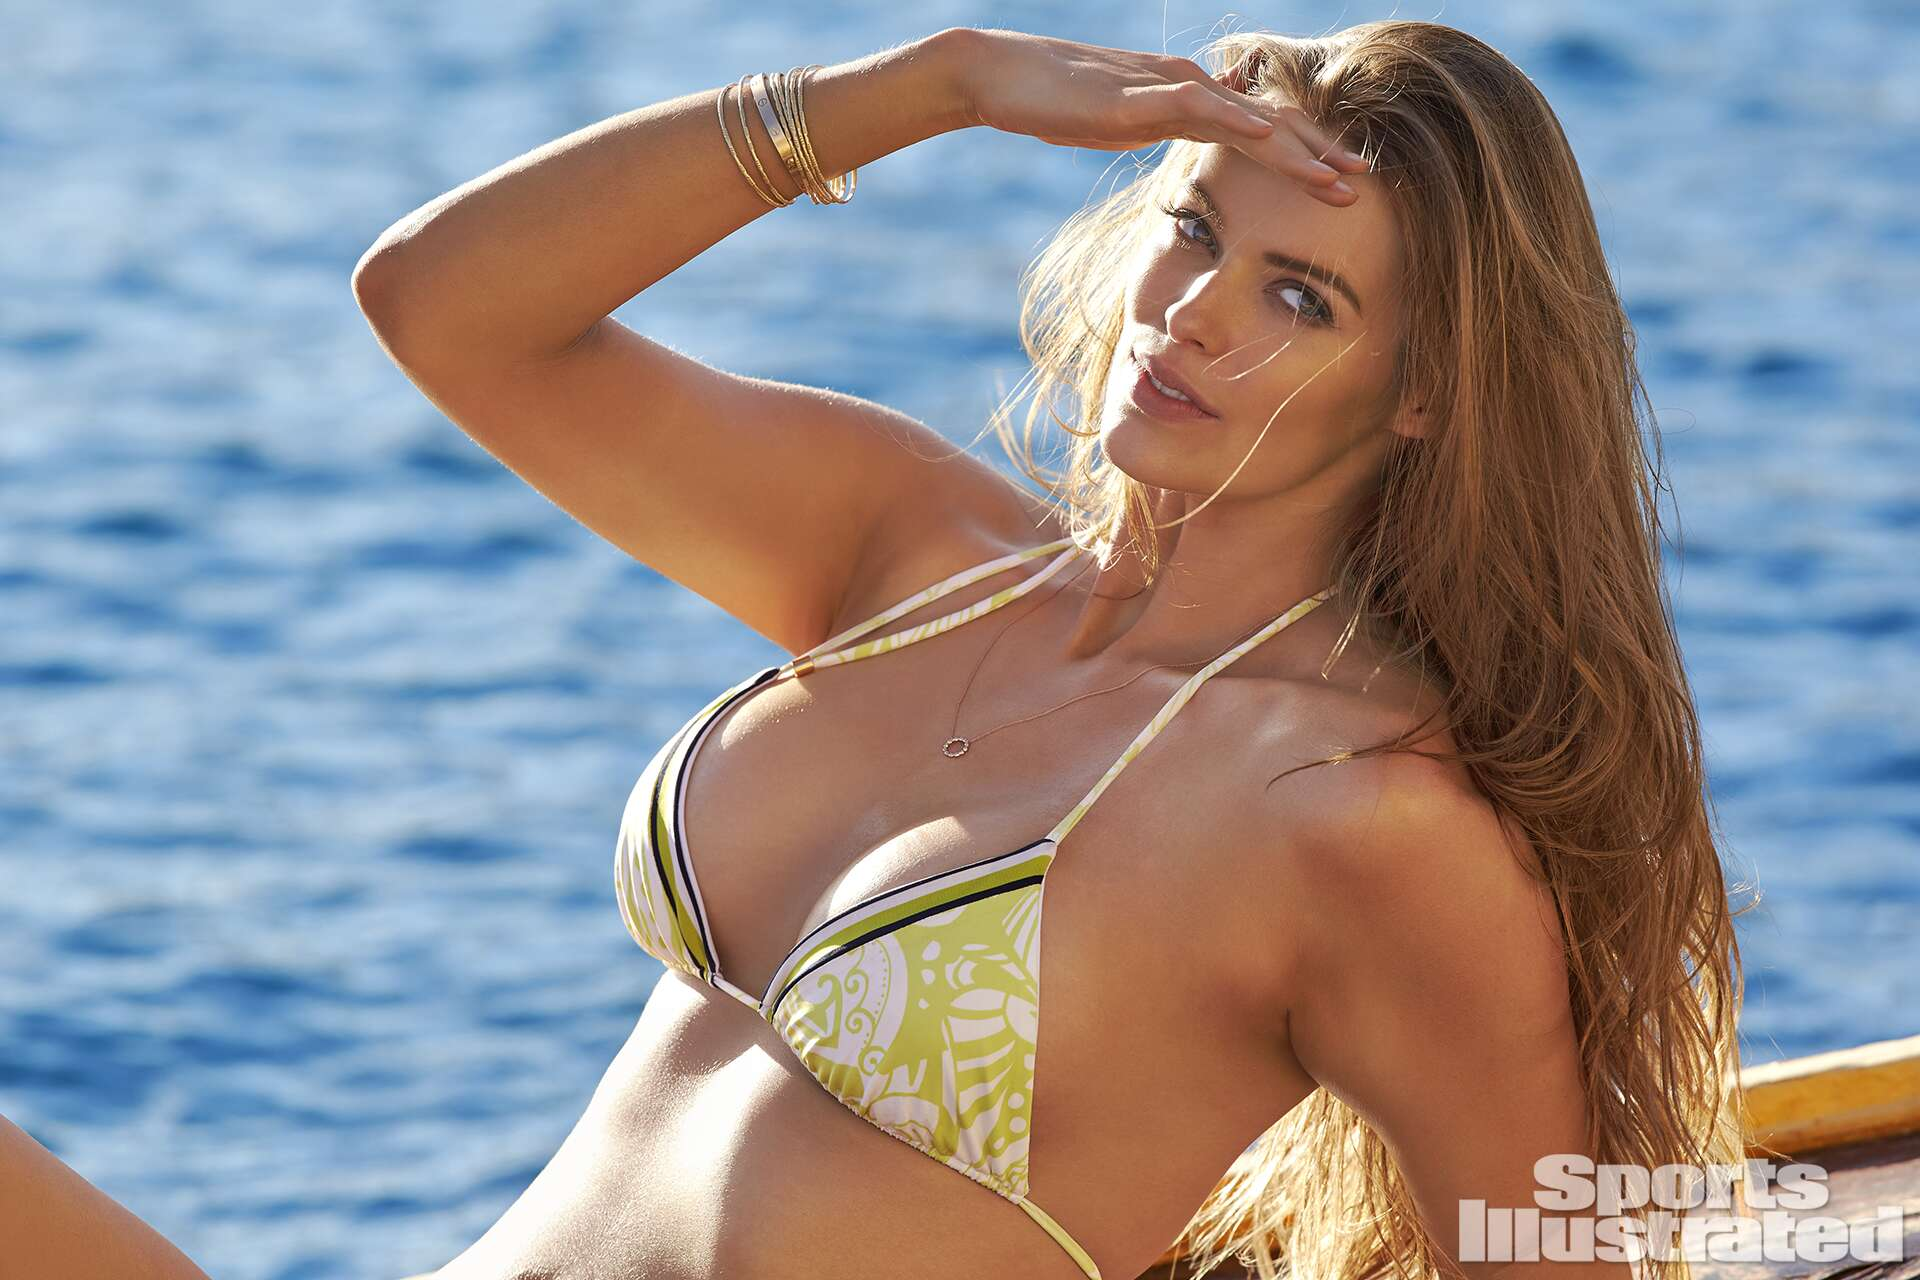 <p>Robyn Lawley was photographed by Ben Watts in Malta. Swimsuit by Ola Vida.</p>